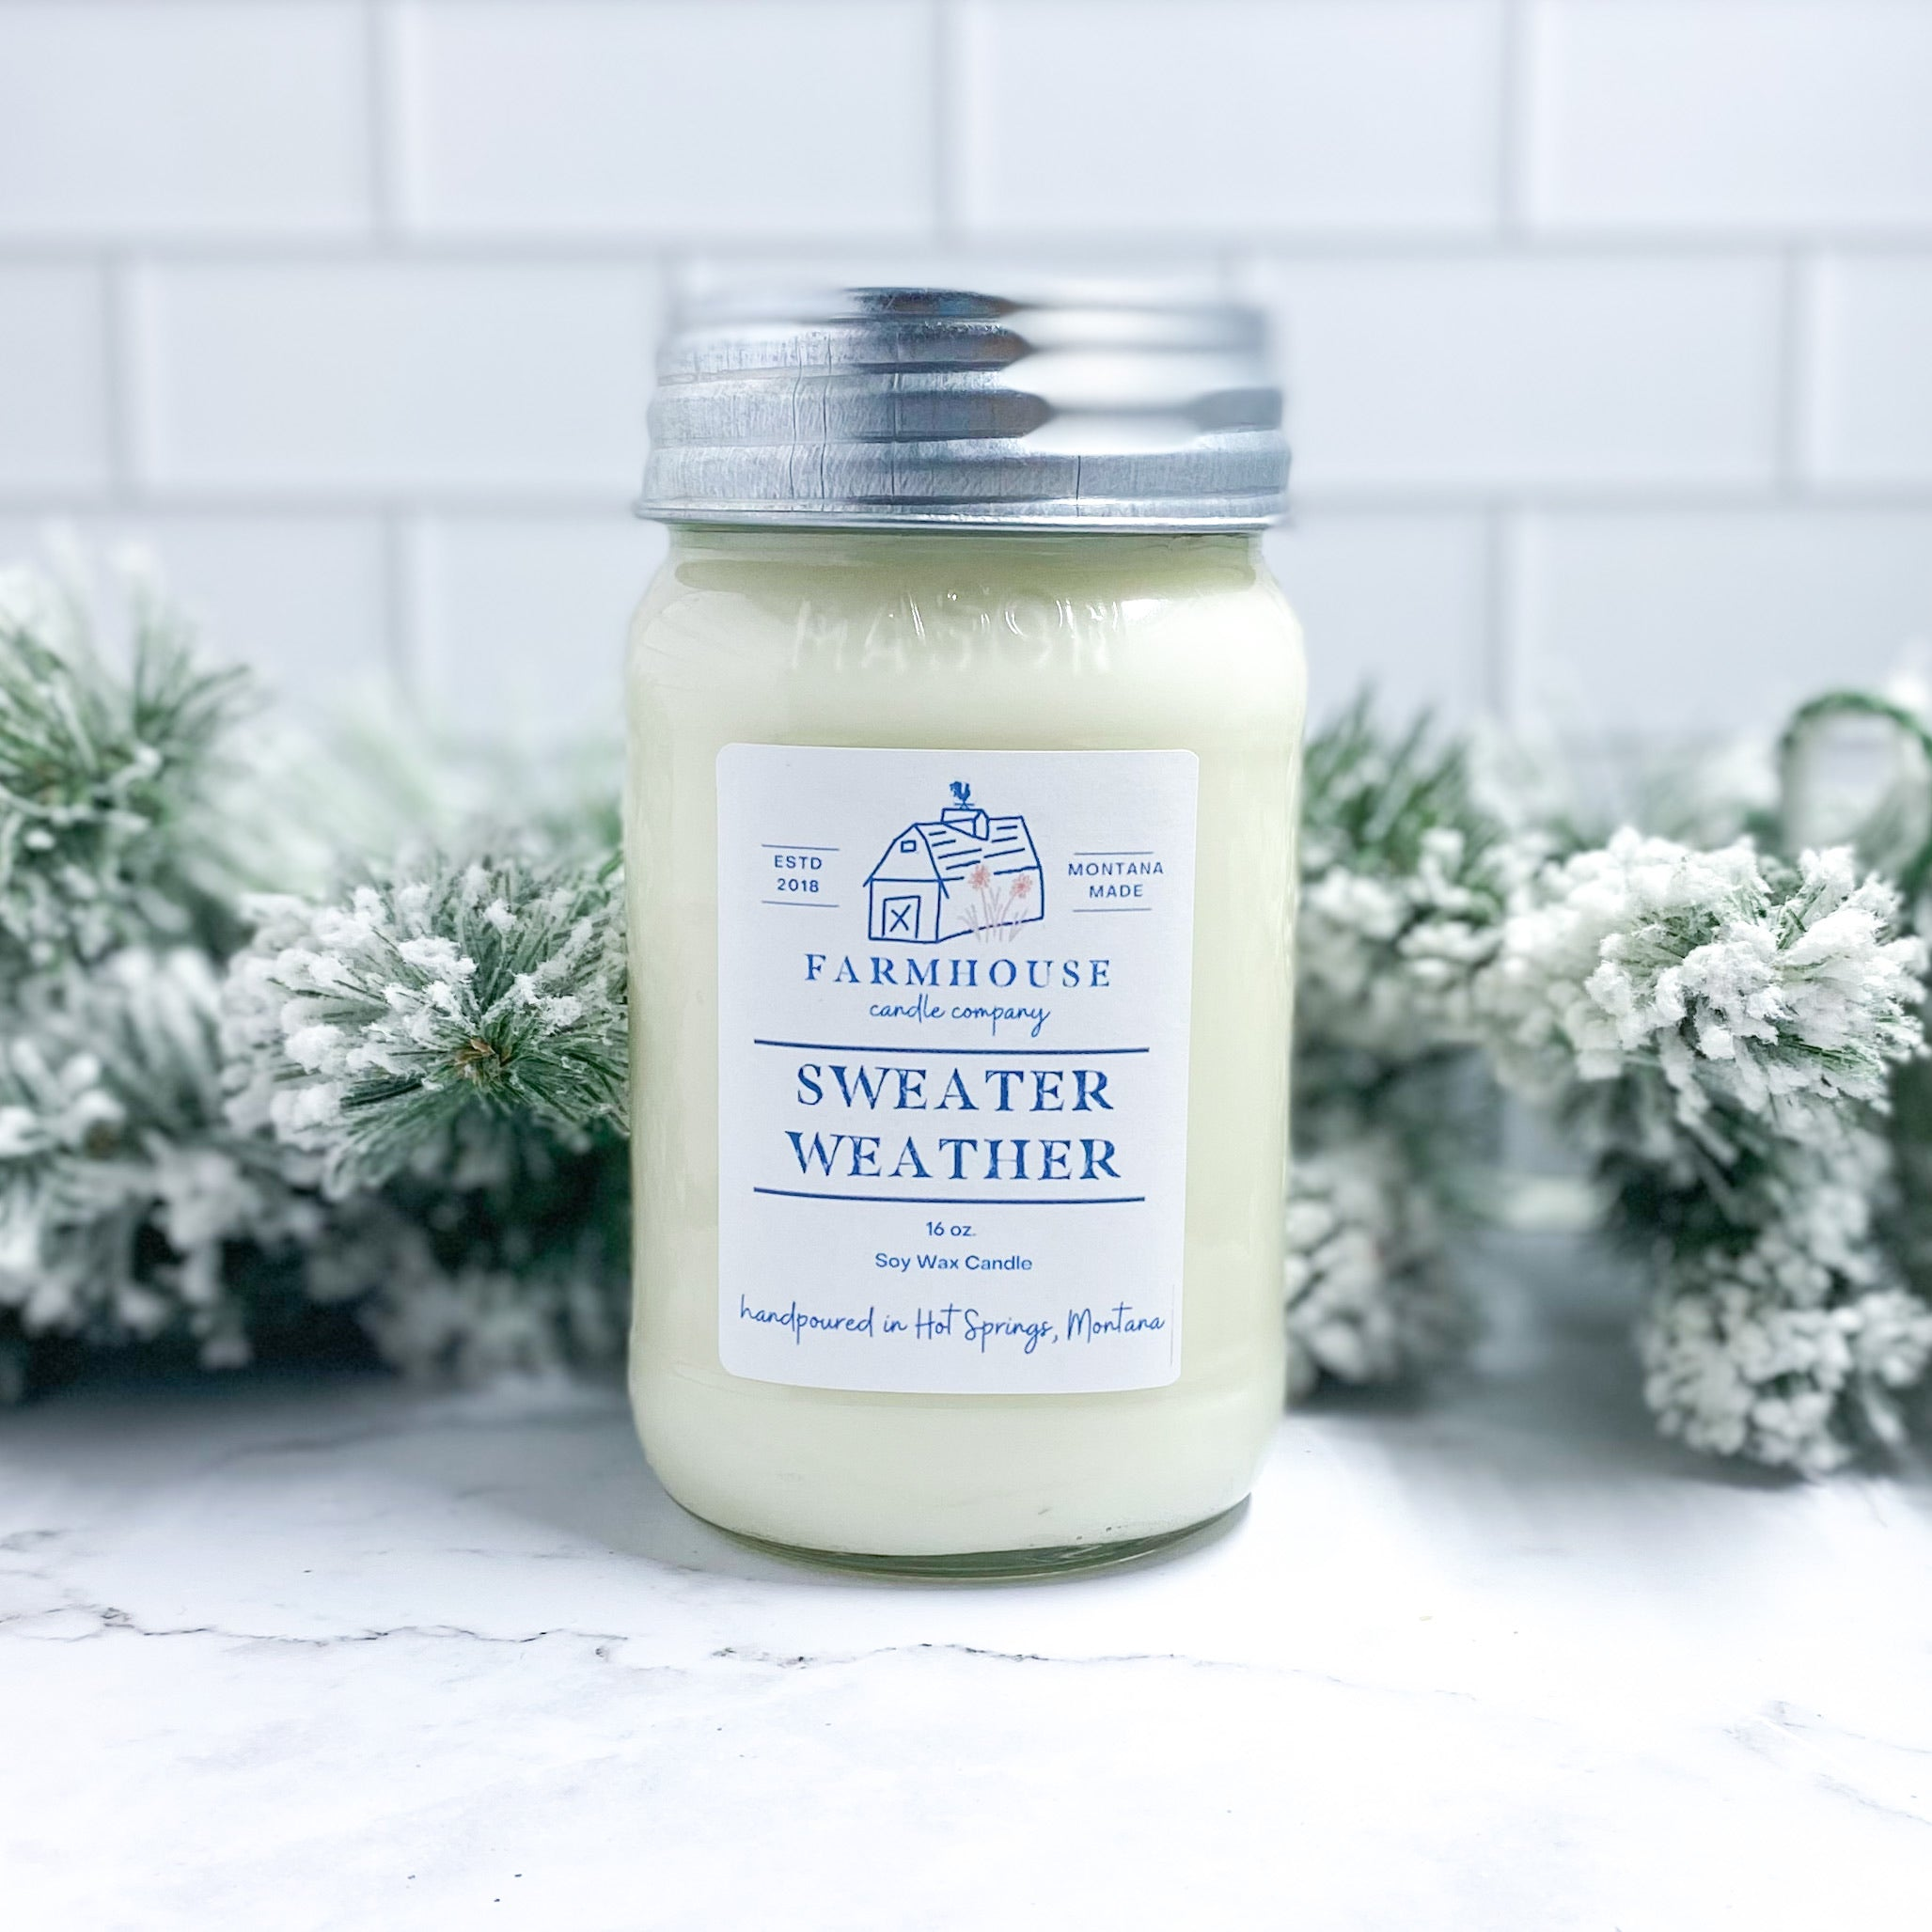 Sweater Weather 16 oz Mason Jar candle